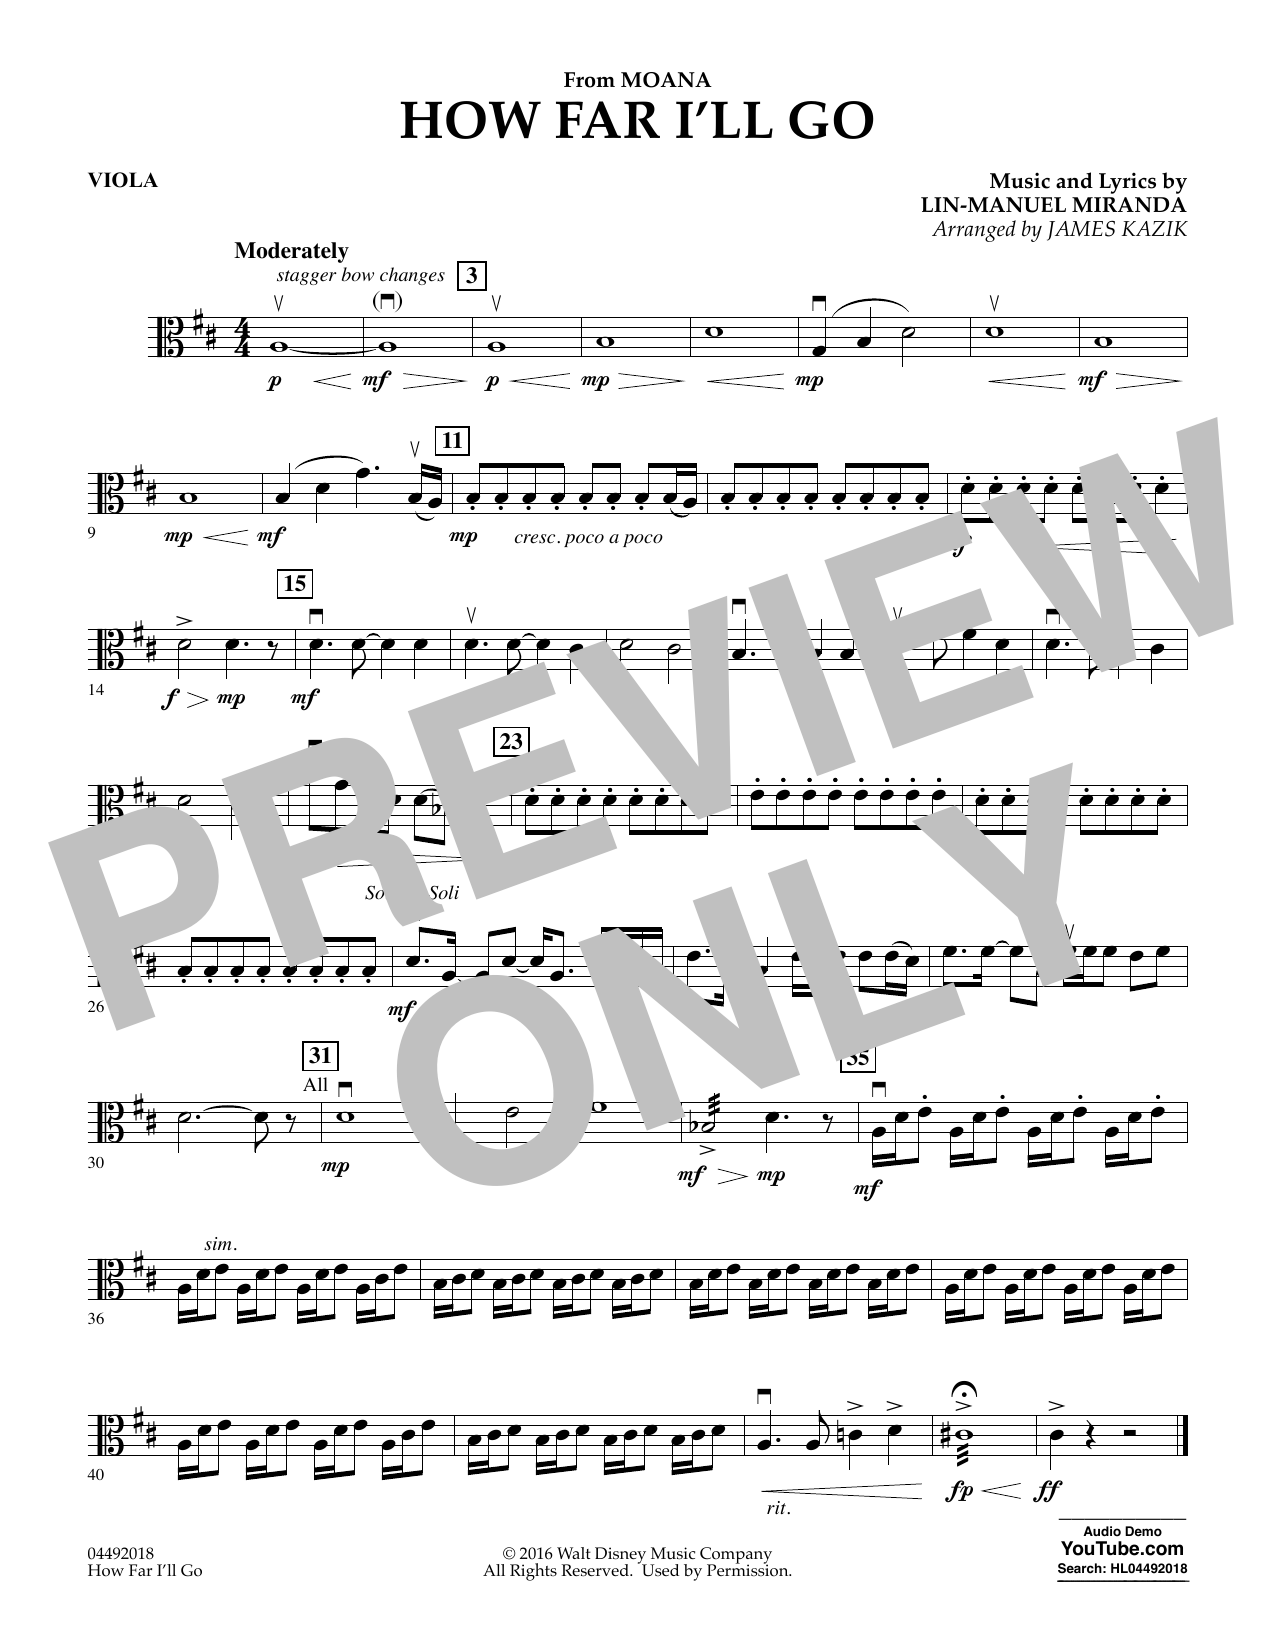 James Kazik How Far I'll Go (from Moana) - Viola sheet music notes and chords. Download Printable PDF.